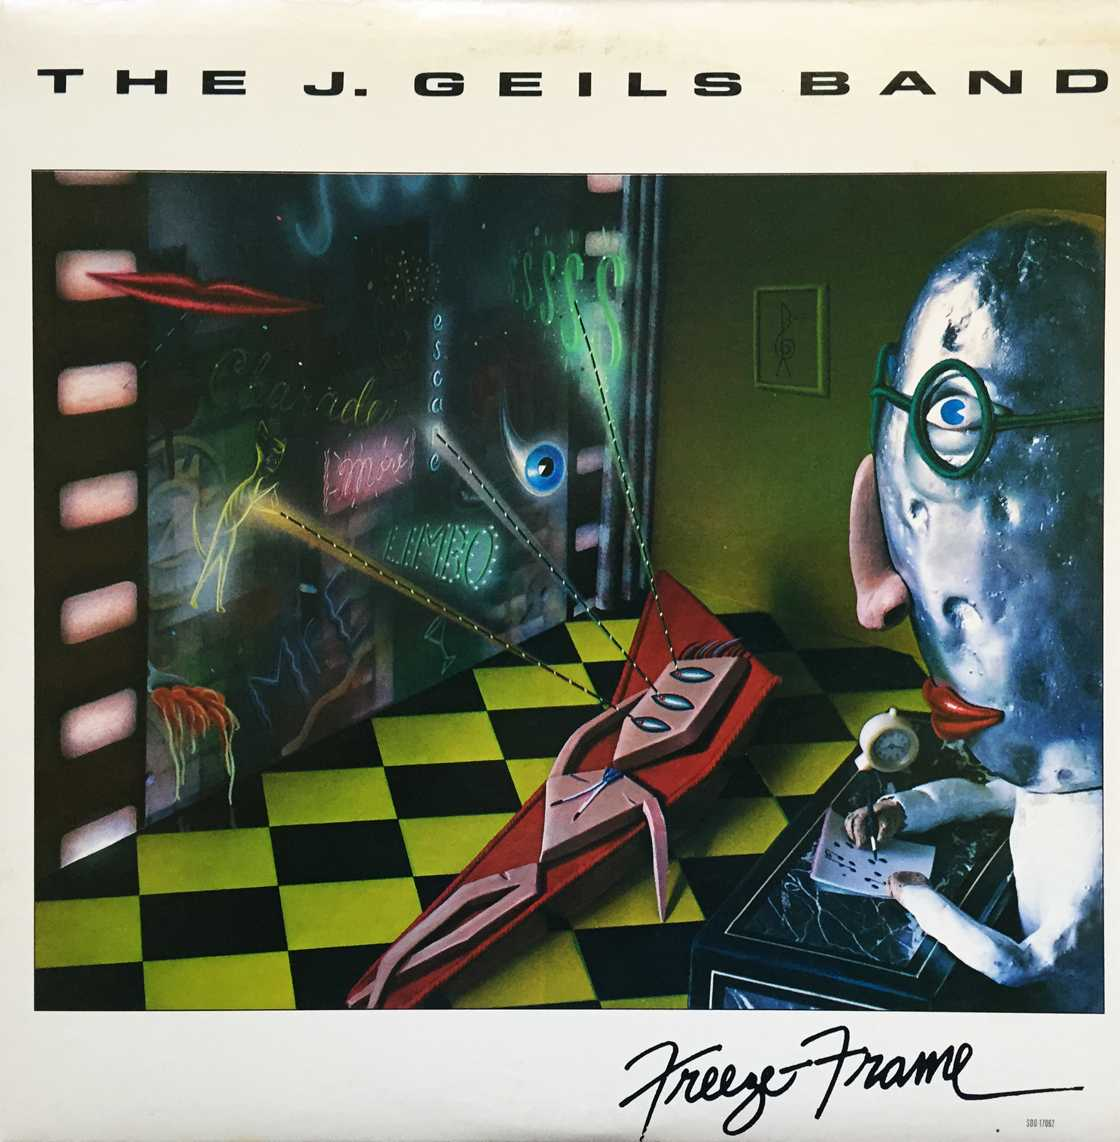 "Powered by their hit single ""Centerfold"", The J. Geils Band had the #1 album on the Billboard charts in 1982 with ""Freeze-frame"". The album held the top spot for four weeks. #80s #80smusicpic.twitter.com/fsYU7xVv12"